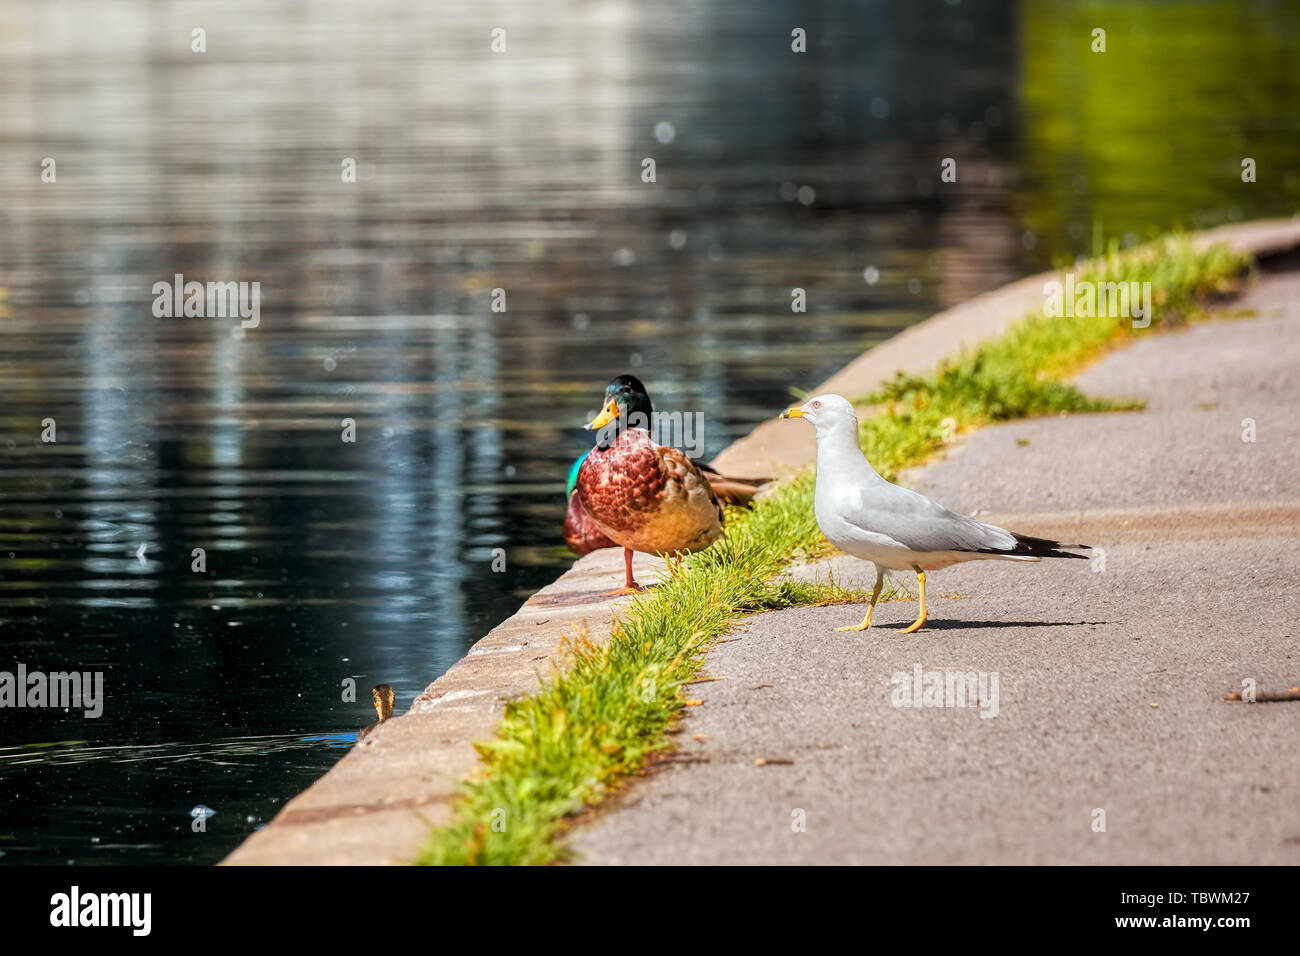 A mallard duck and a seagull standing together near the pond. Togetherness and friendship in nature - Stock Image